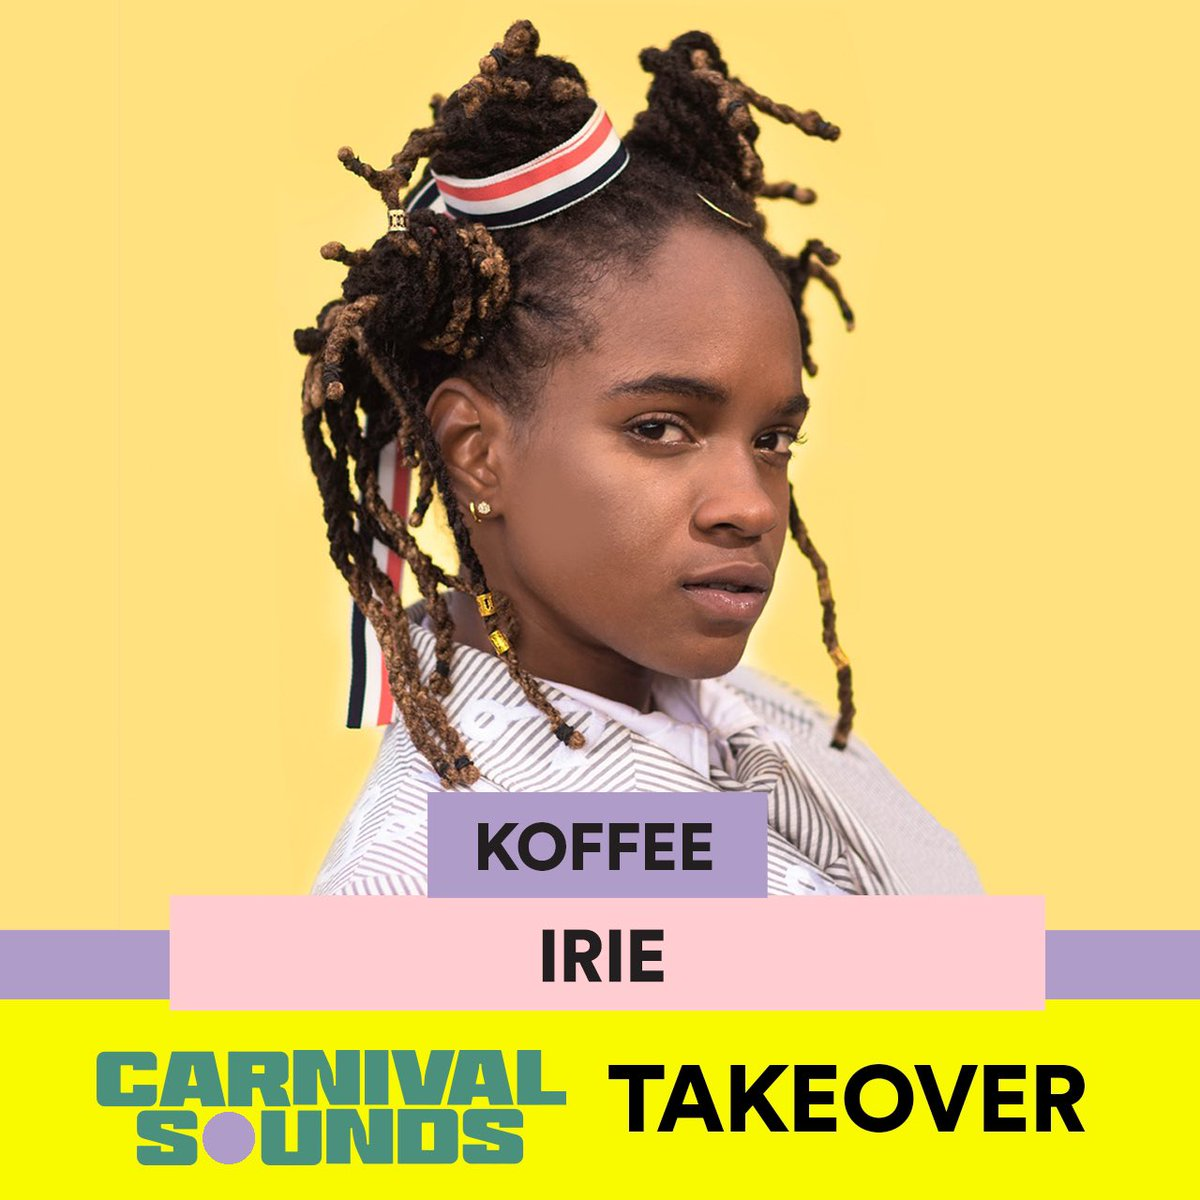 Took over the Irie playlist on @SpotifyUK to celebrate Notting Hill Carnival #NHCAtHome